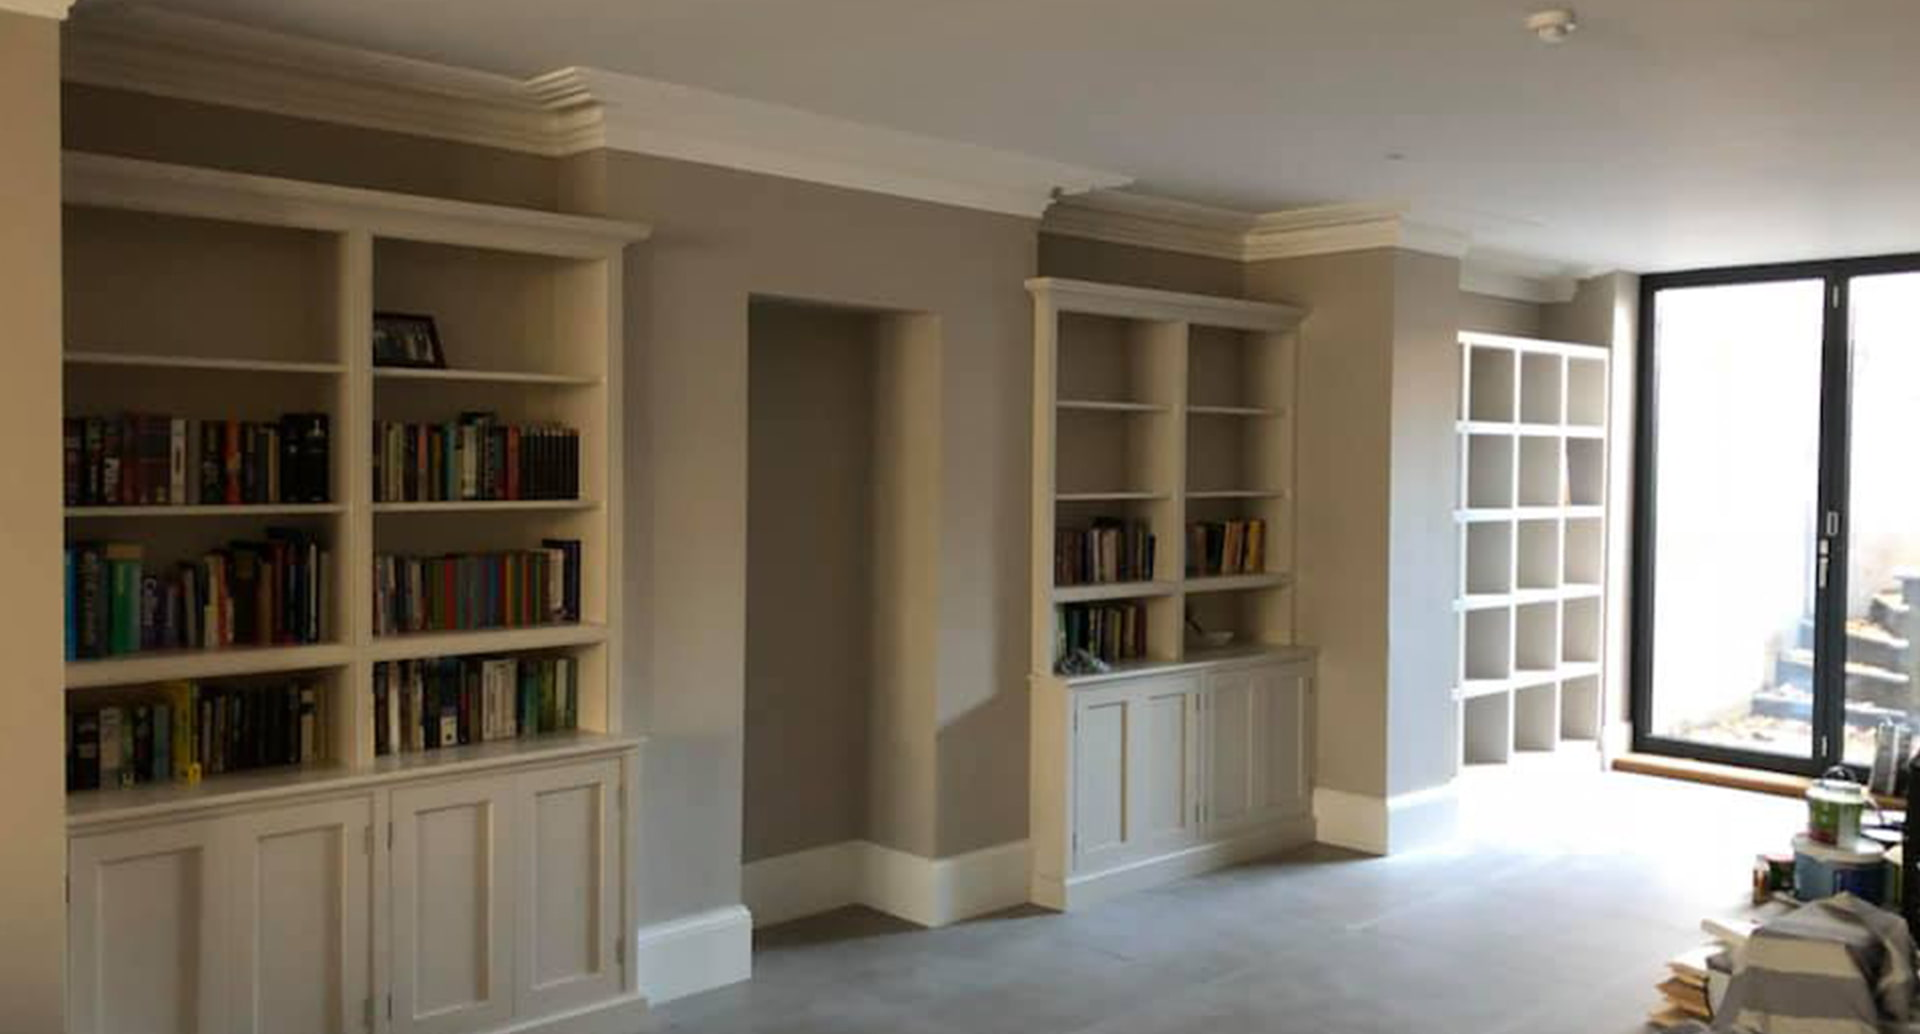 Three, bespoke, book cases with books stacked upon them